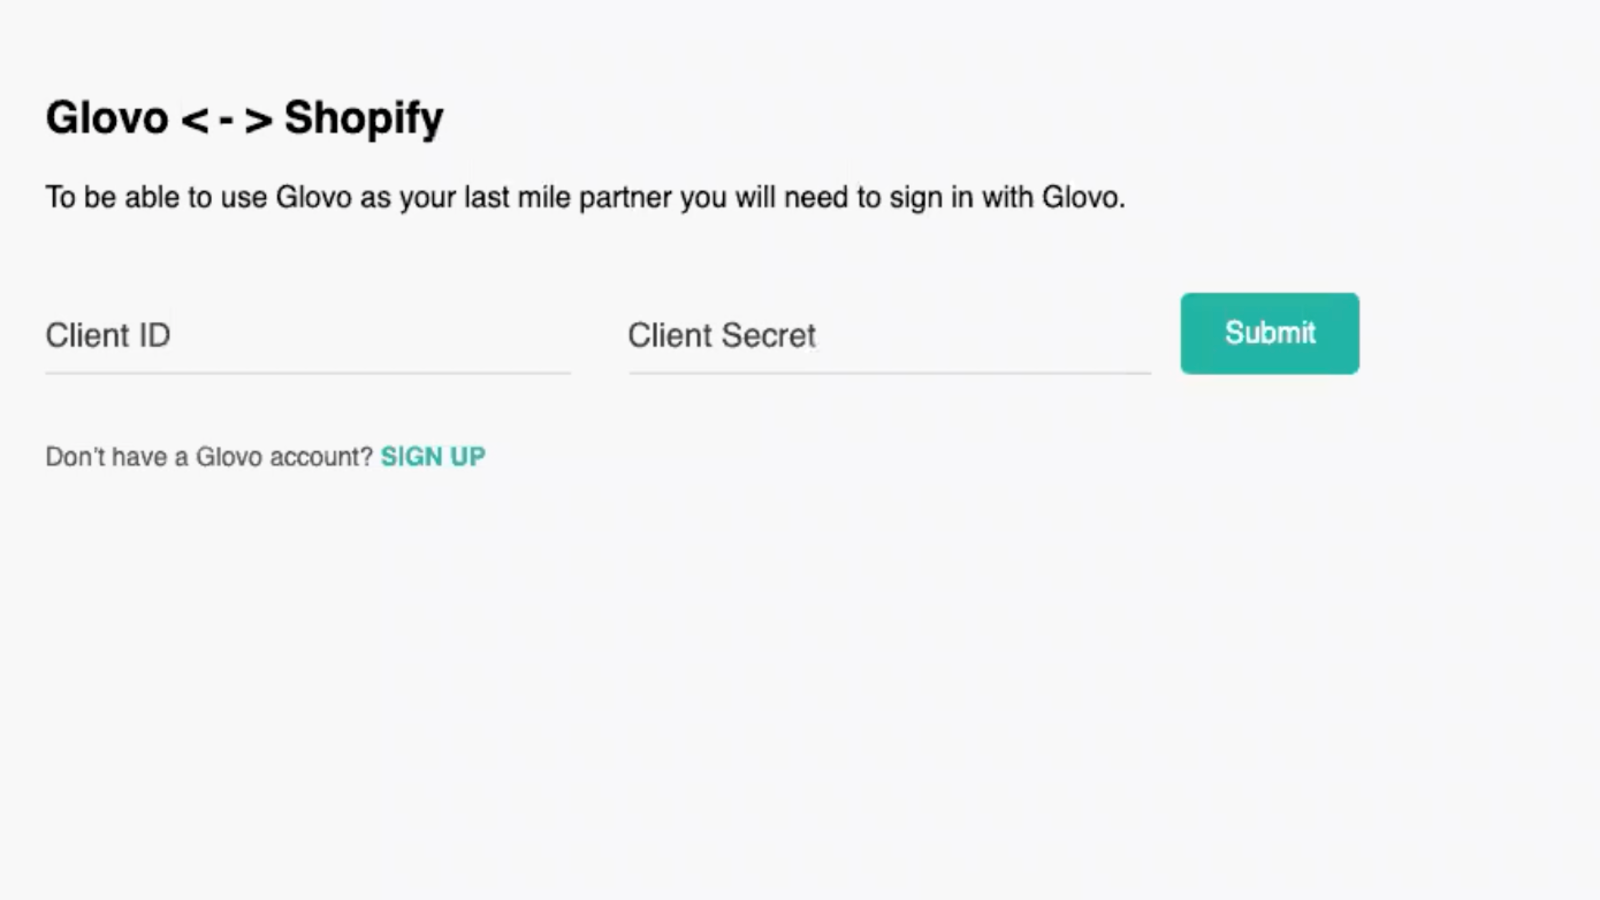 Home page to insert credentials an link to Glovo